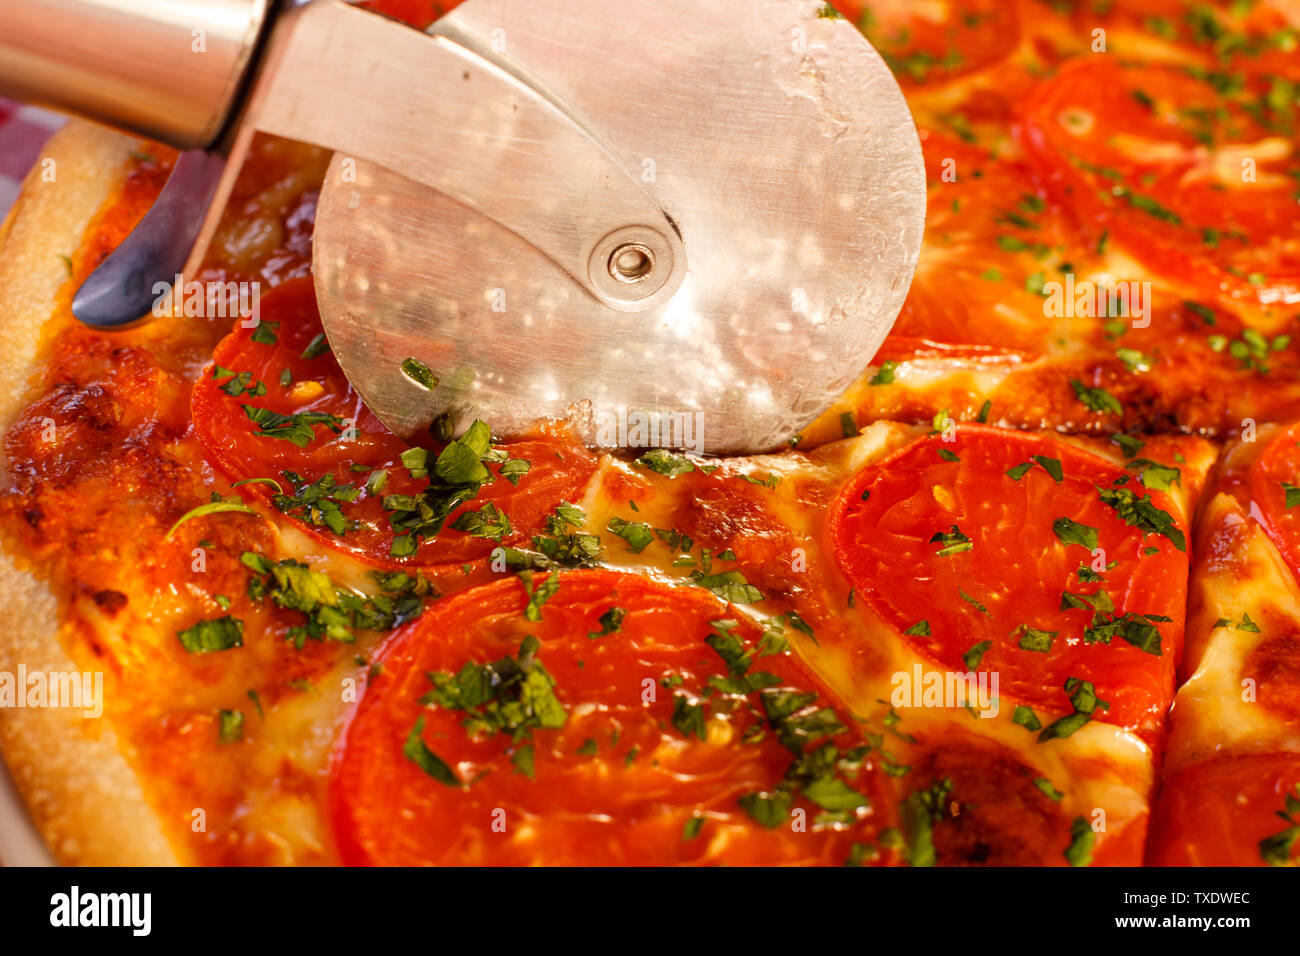 Close up Cuts with a pizza cutter. Pizza Margarita. Delicious hot food sliced and served on white platter. Menu photo, Italian fast food. - Stock Image